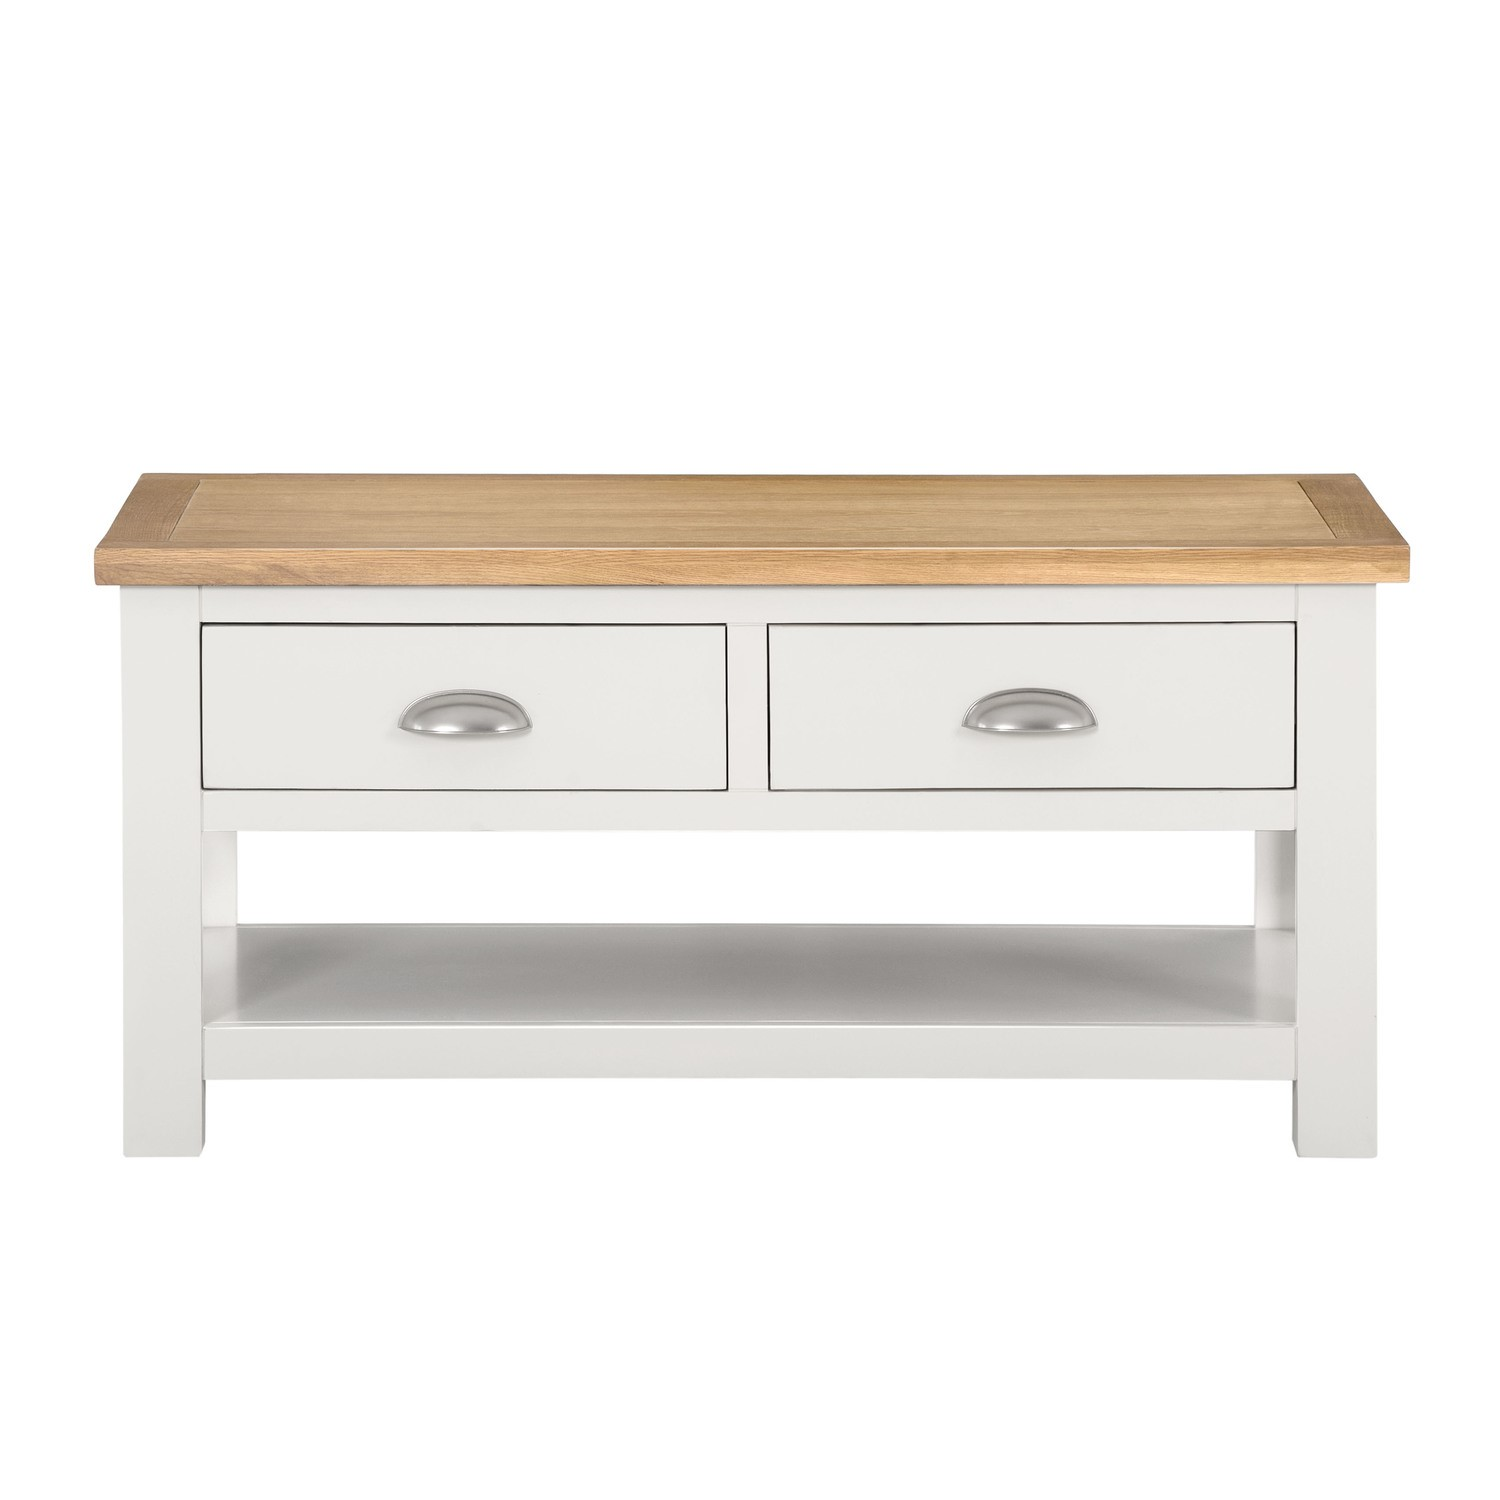 Willow Wood Coffee Table With Storage In Cream And Light Oak